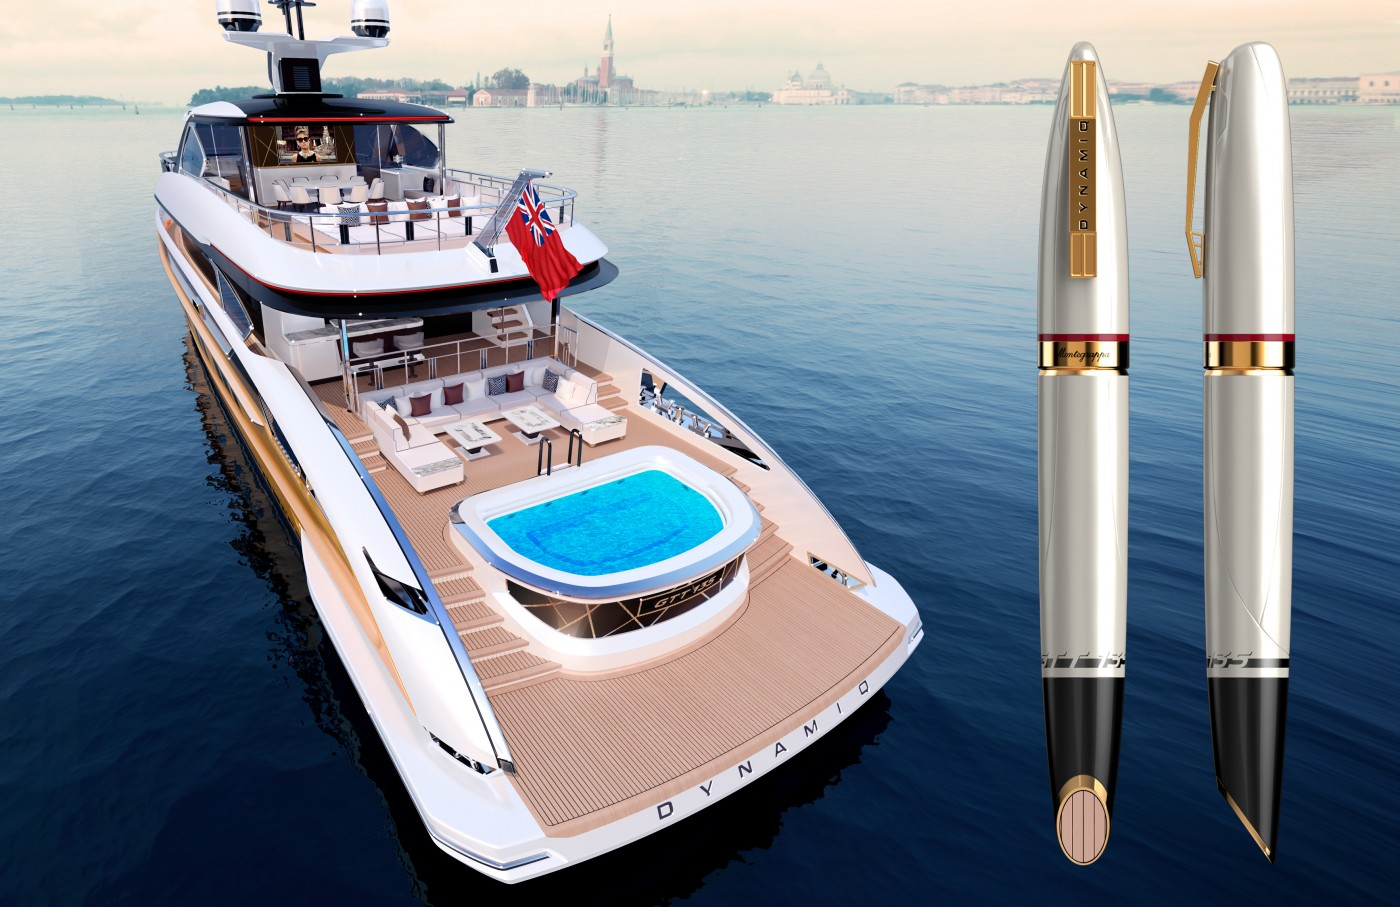 SUPERYACHT BRAND DYNAMIQ AND LUXURY PEN MAKERS MONTEGRAPPA COLLABORATE TO CREATE SPECIAL EDITION PEN